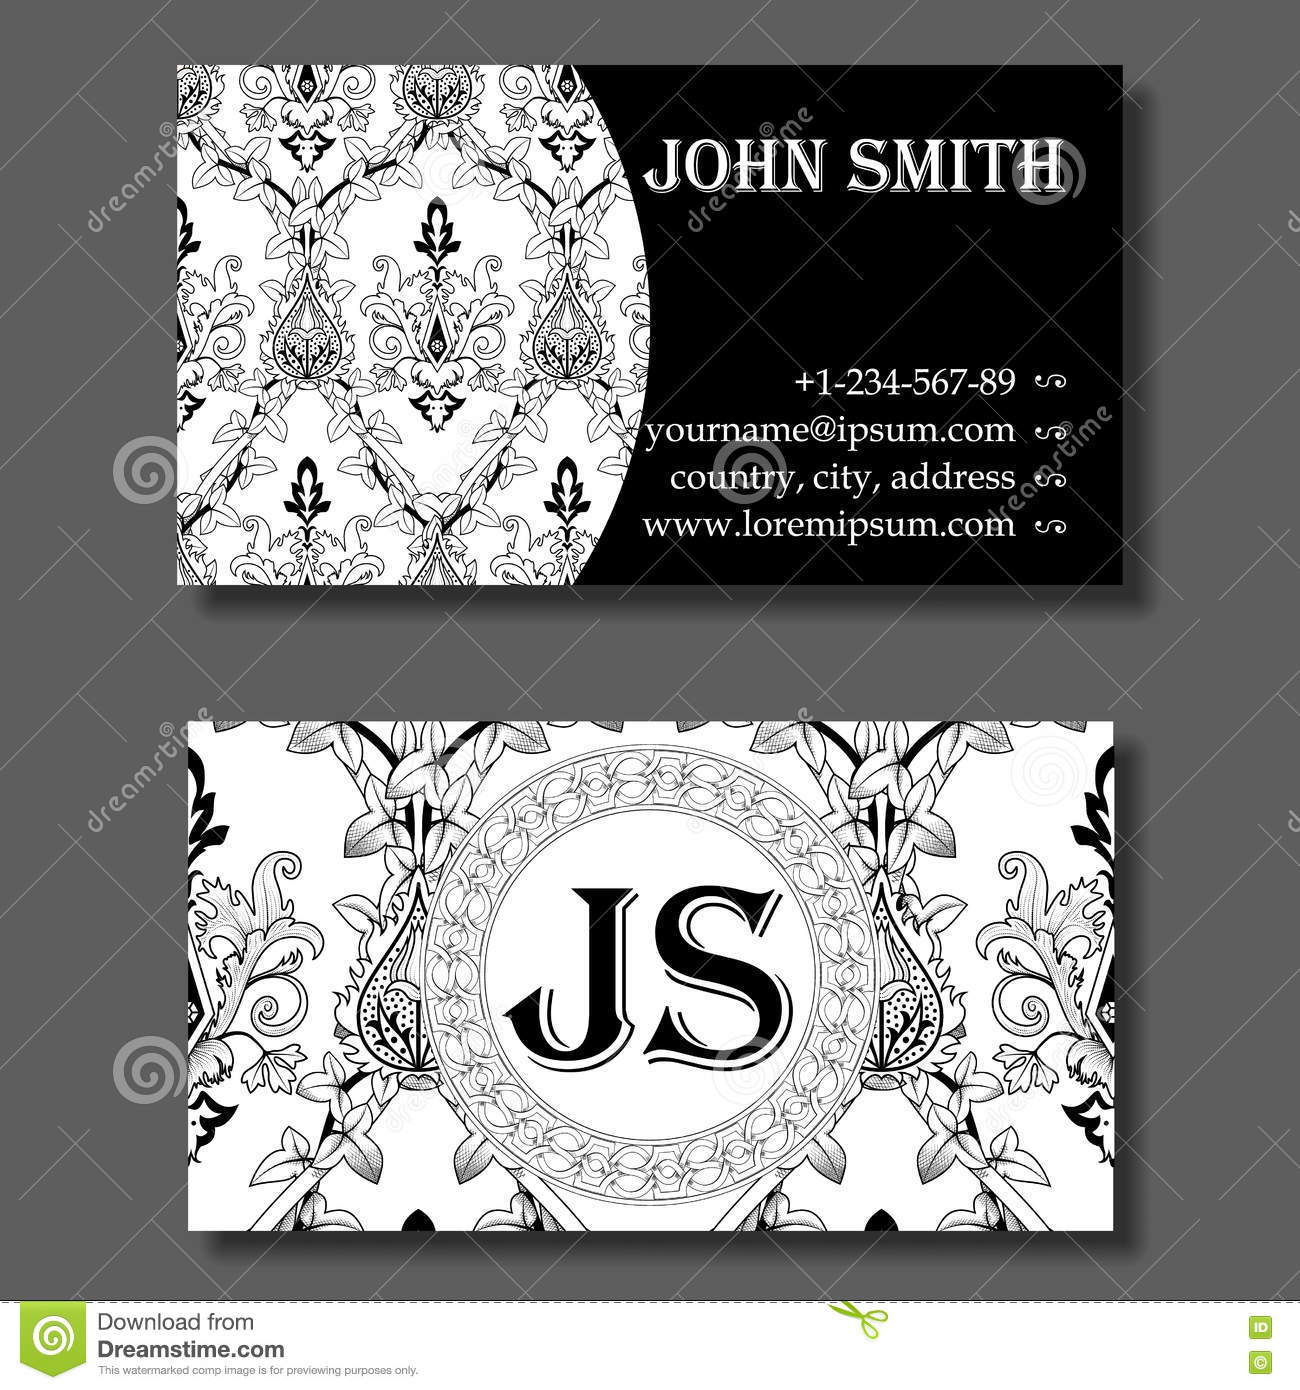 Business card template black and white vintage pattern stock vector business card template black and white vintage pattern flashek Images